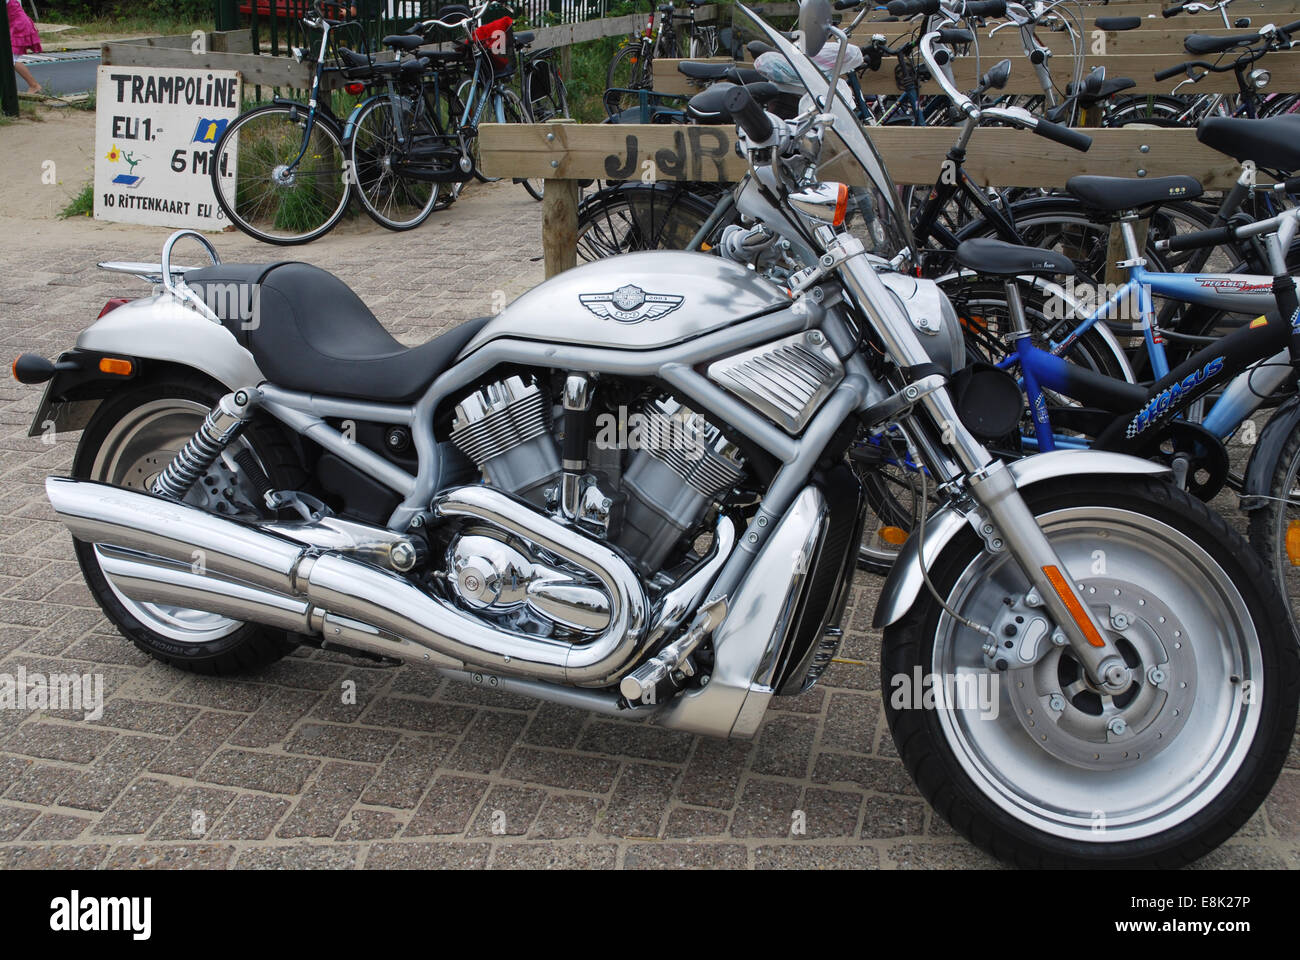 harley davidson v rod stock photos harley davidson v rod stock images alamy. Black Bedroom Furniture Sets. Home Design Ideas